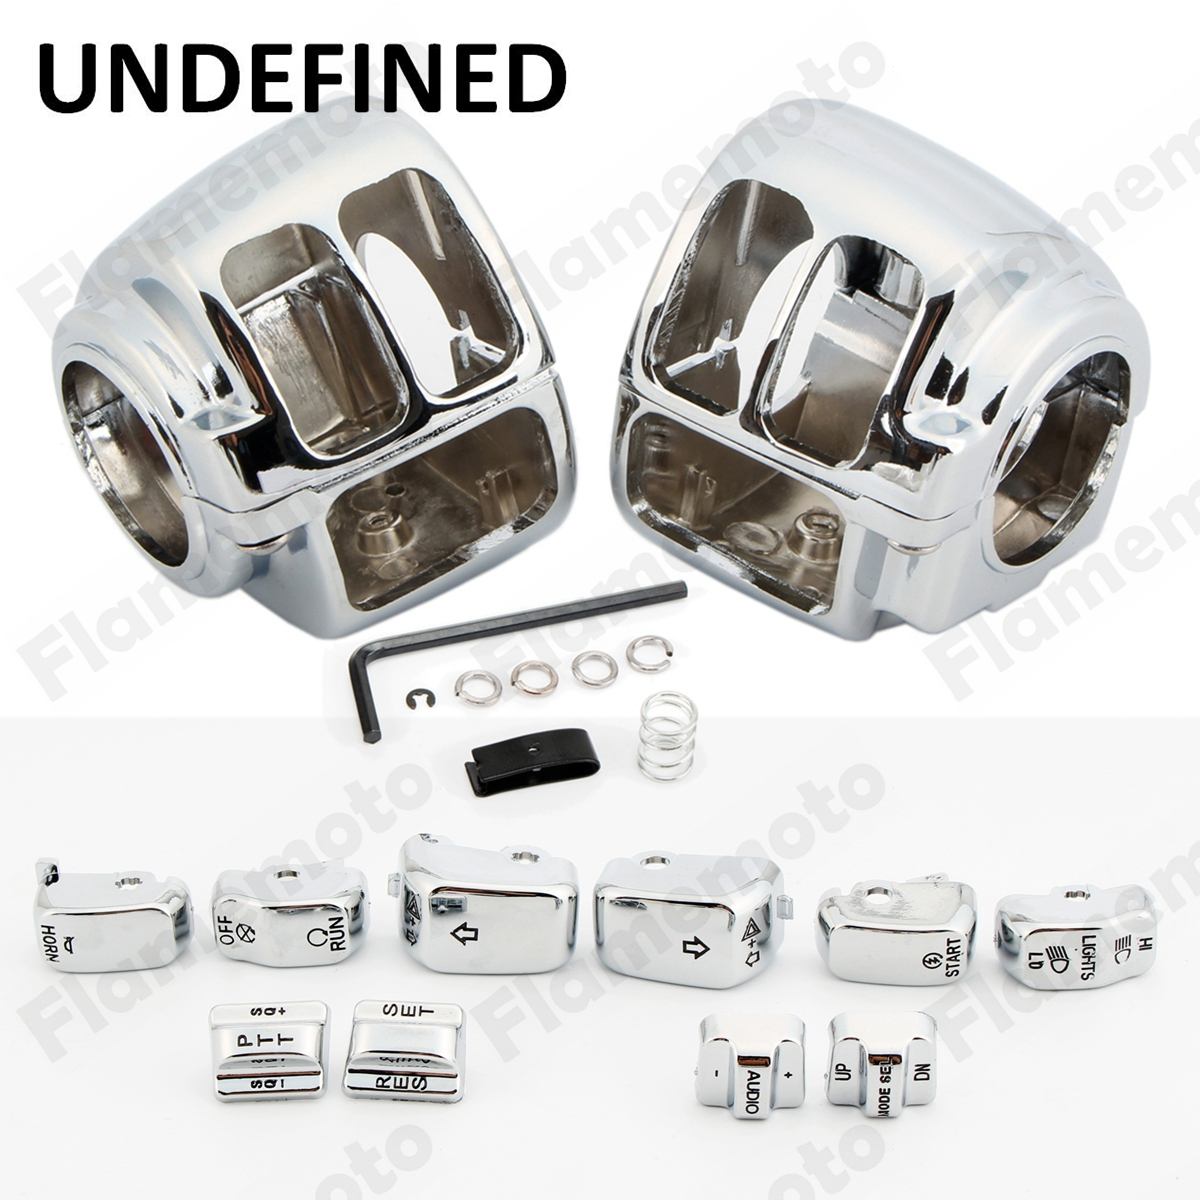 Motorcycle Parts Aluminum Chrome Switch Housing Cover Kit 10 Cap Motorbike For Harley Sportster XL 883